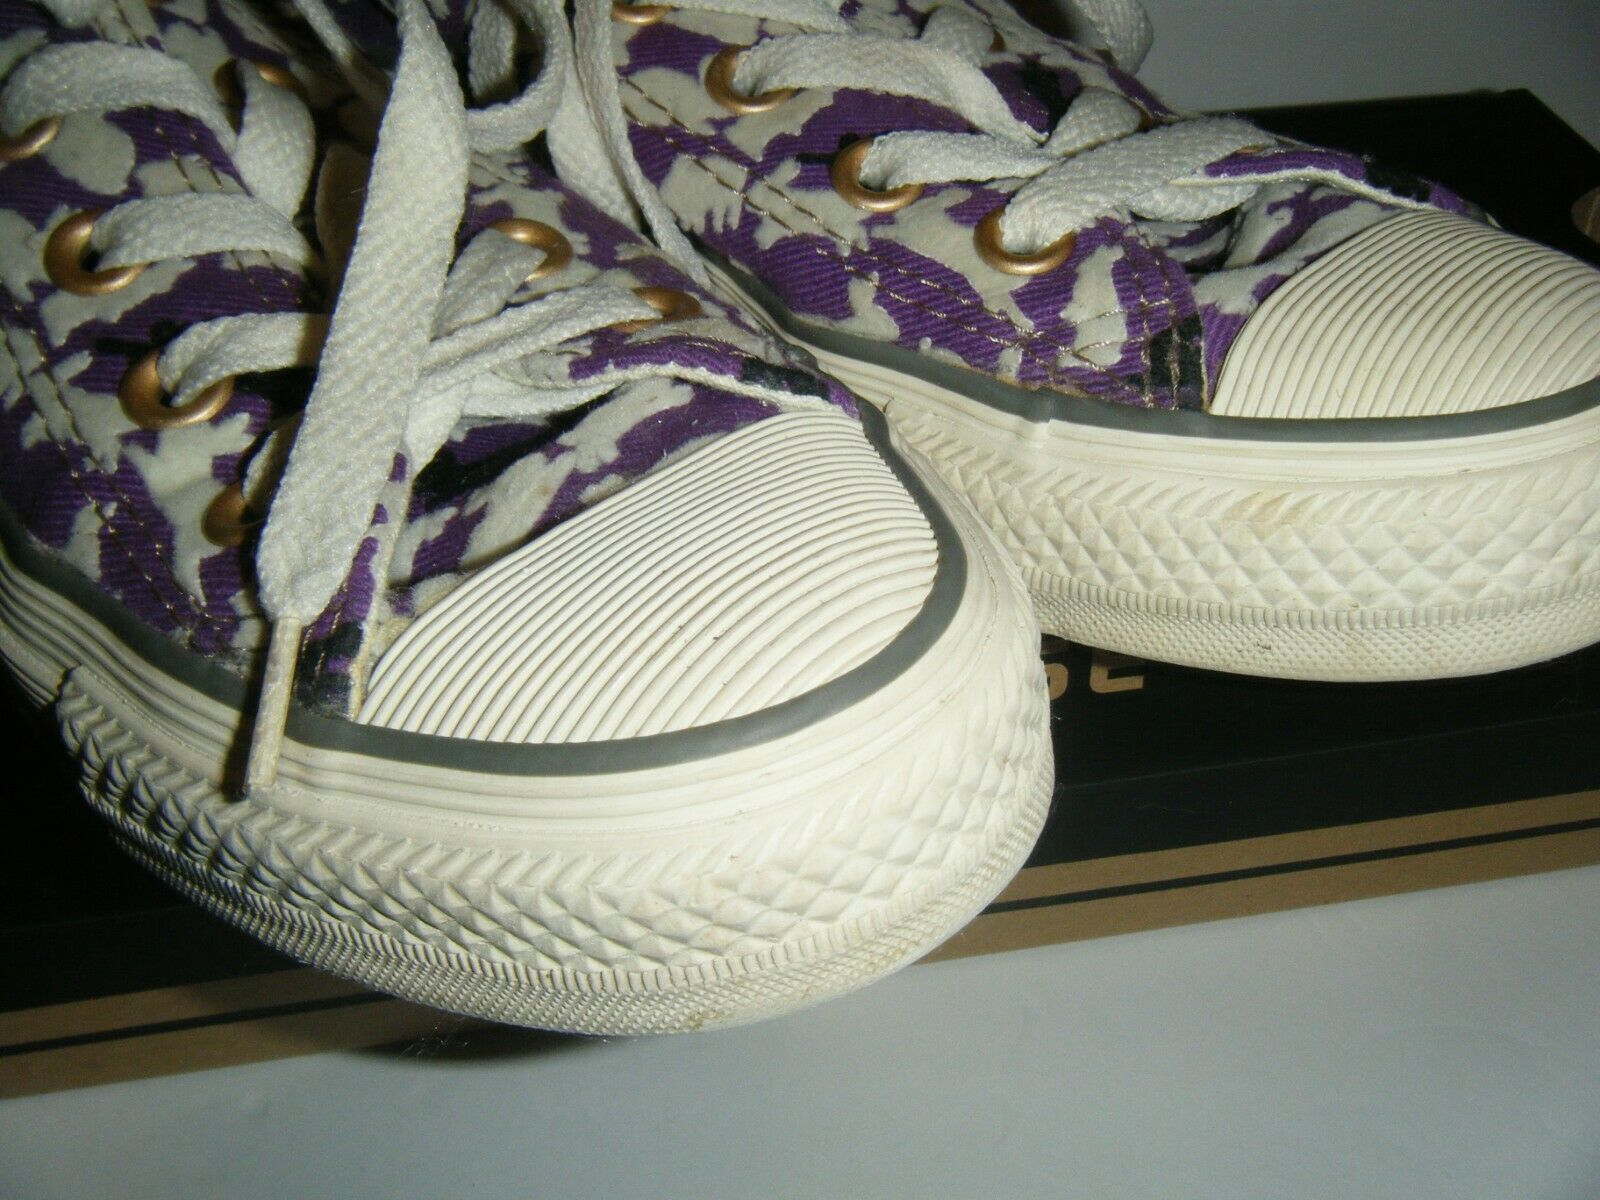 Converse All Star Tennis Shoes Mens 3 Womens 5 Ox Bunny Rabbit Purple Flocked image 10